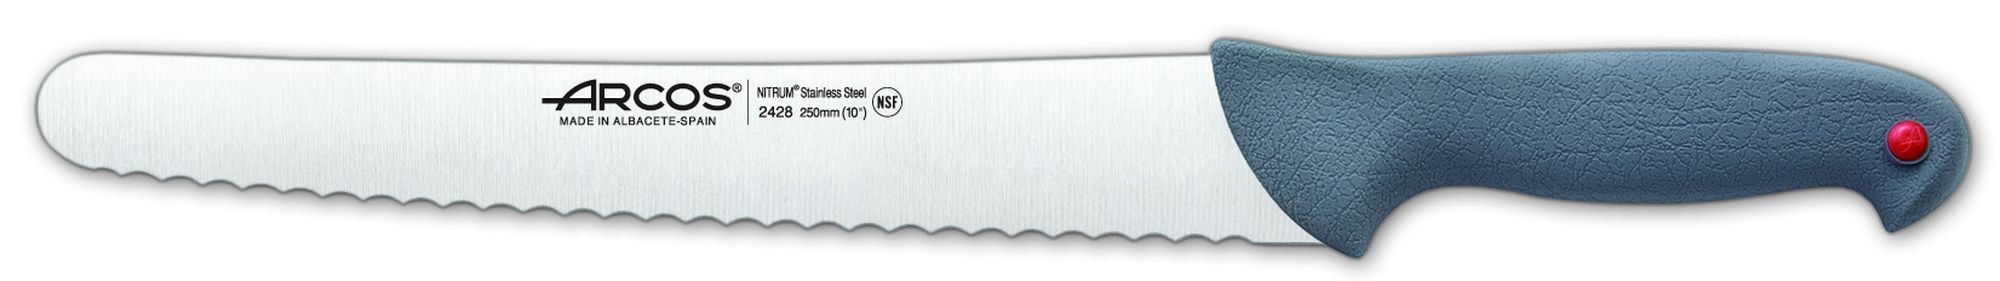 Pastry Knife Arcos ref.: 242800